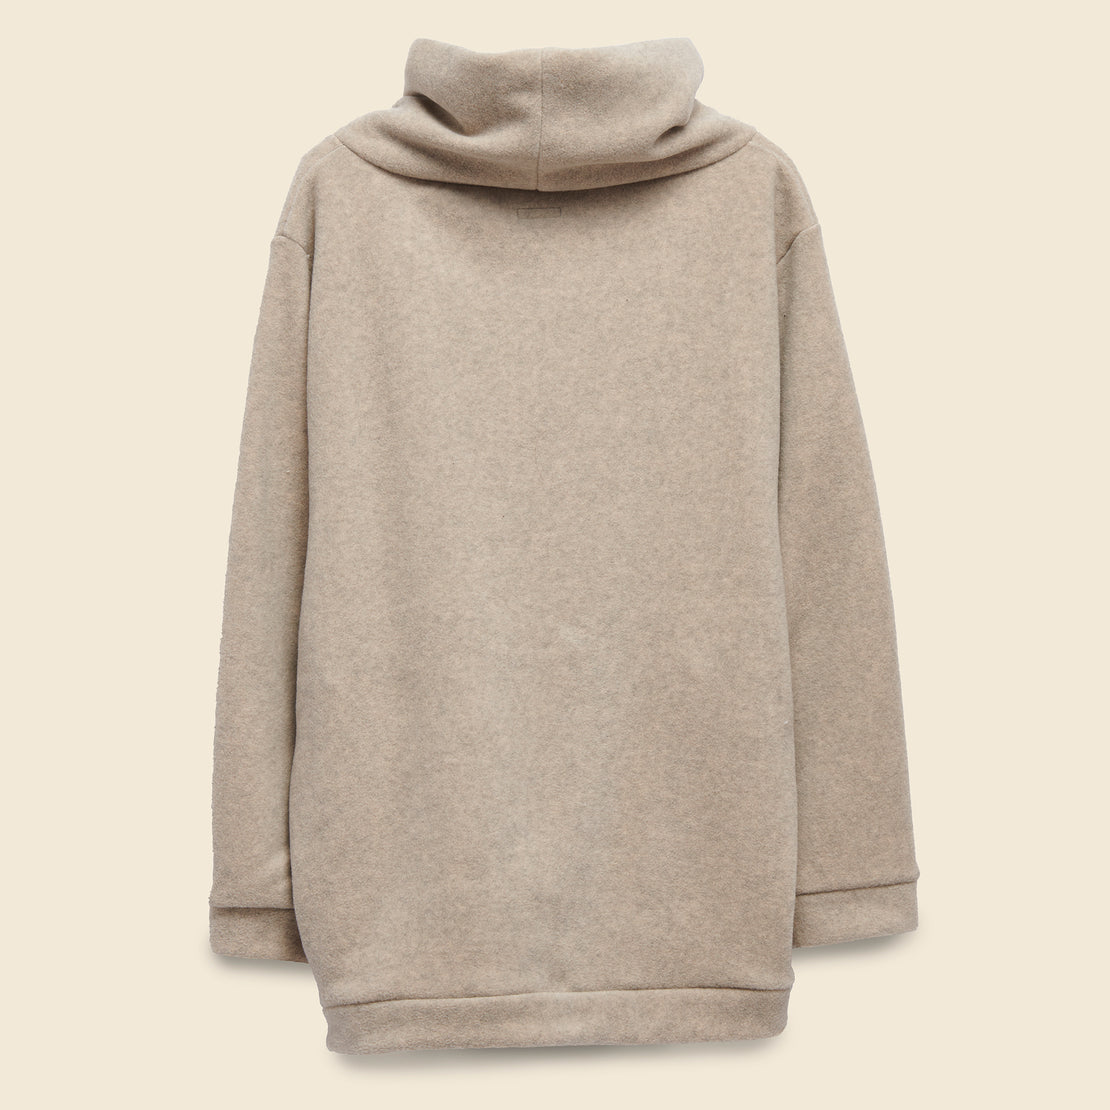 Reverse Fleece Big High Neck Sweatshirt - Ecru